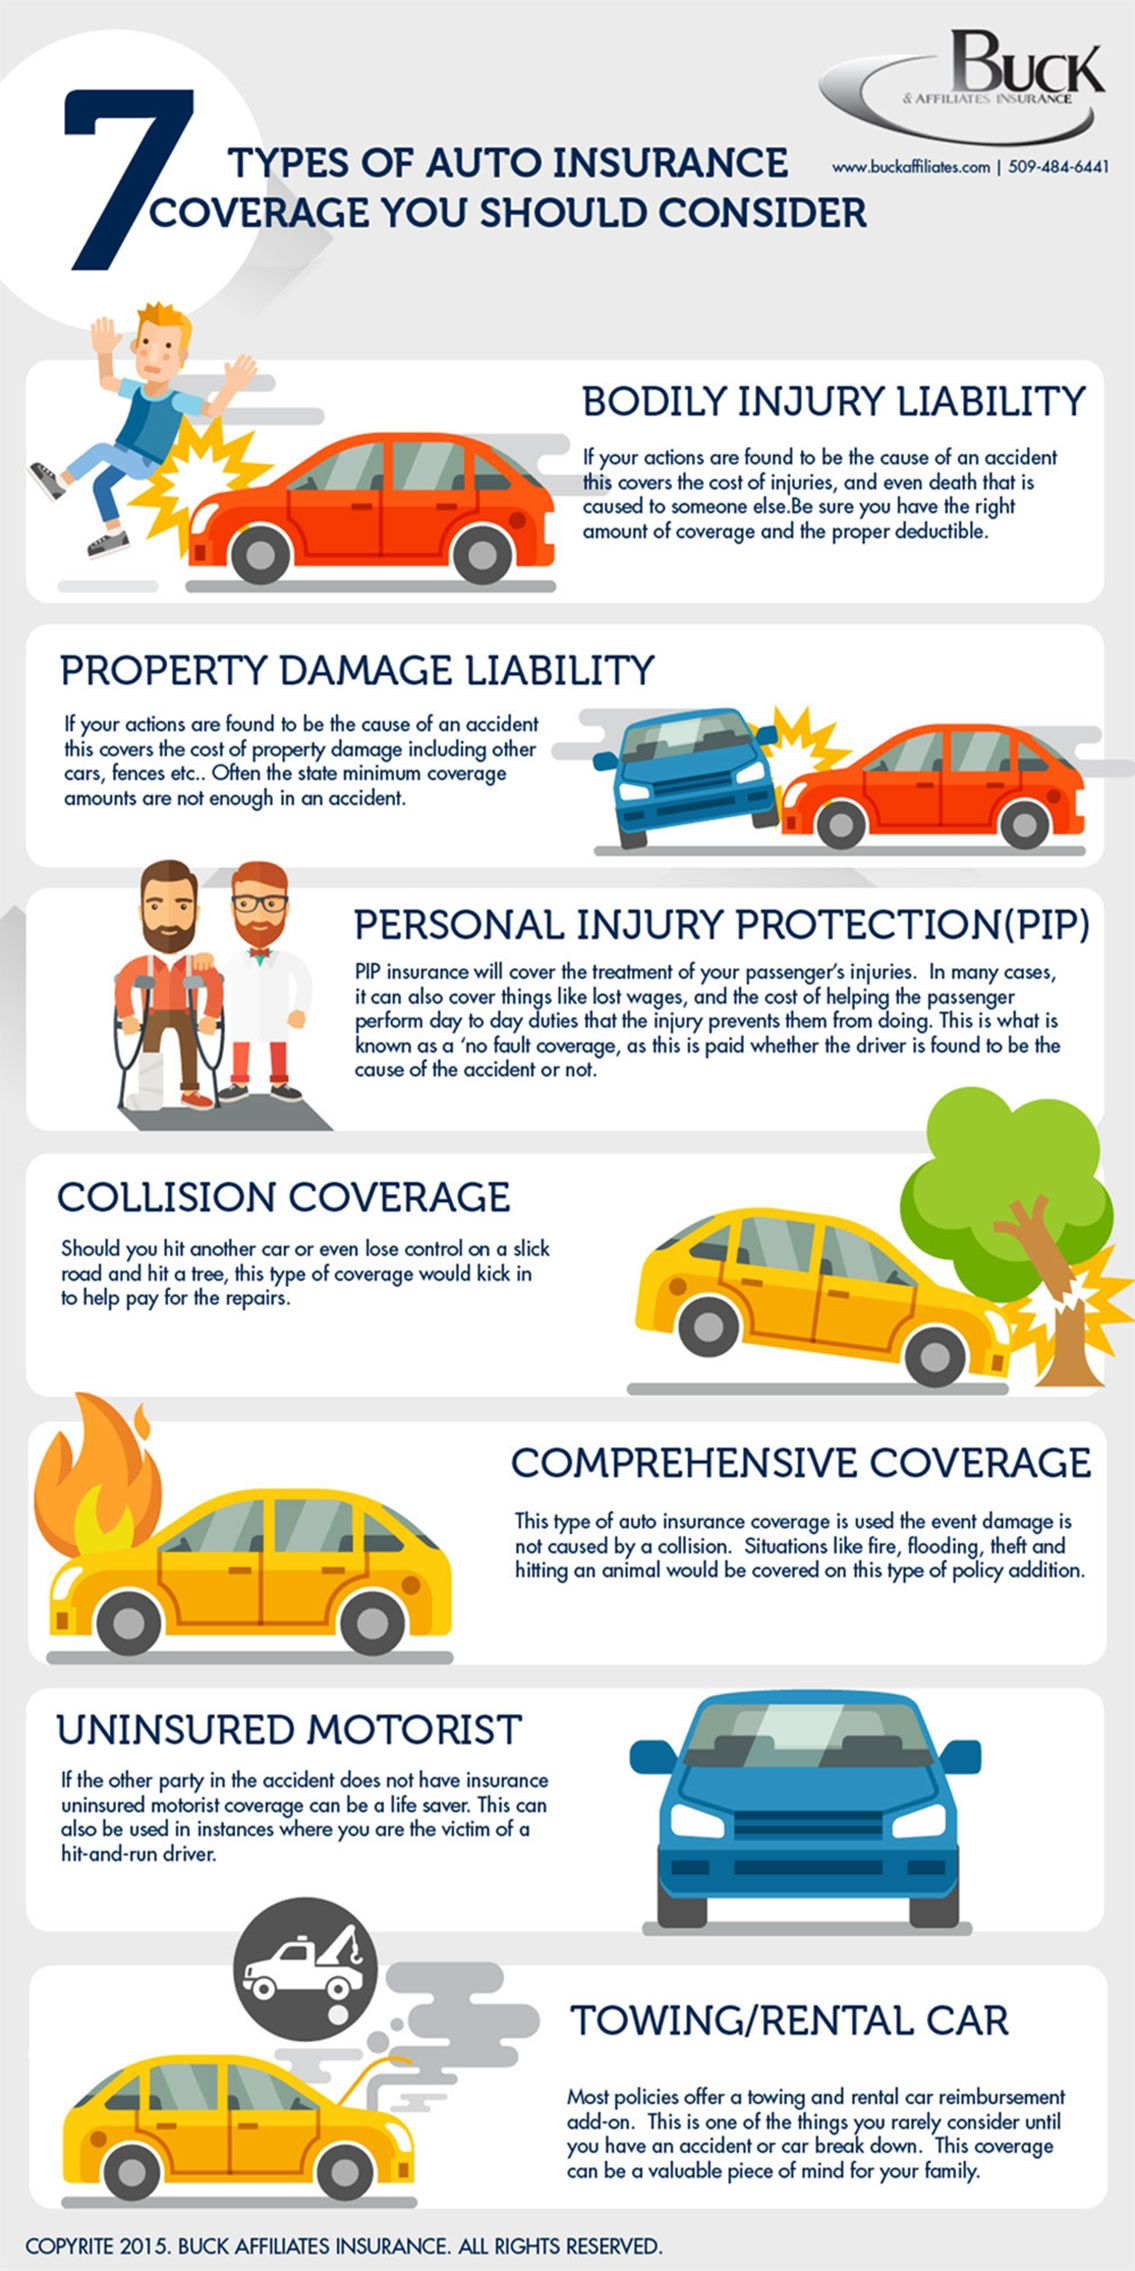 7 Types of Car Insurance You Should Consider [Infographic